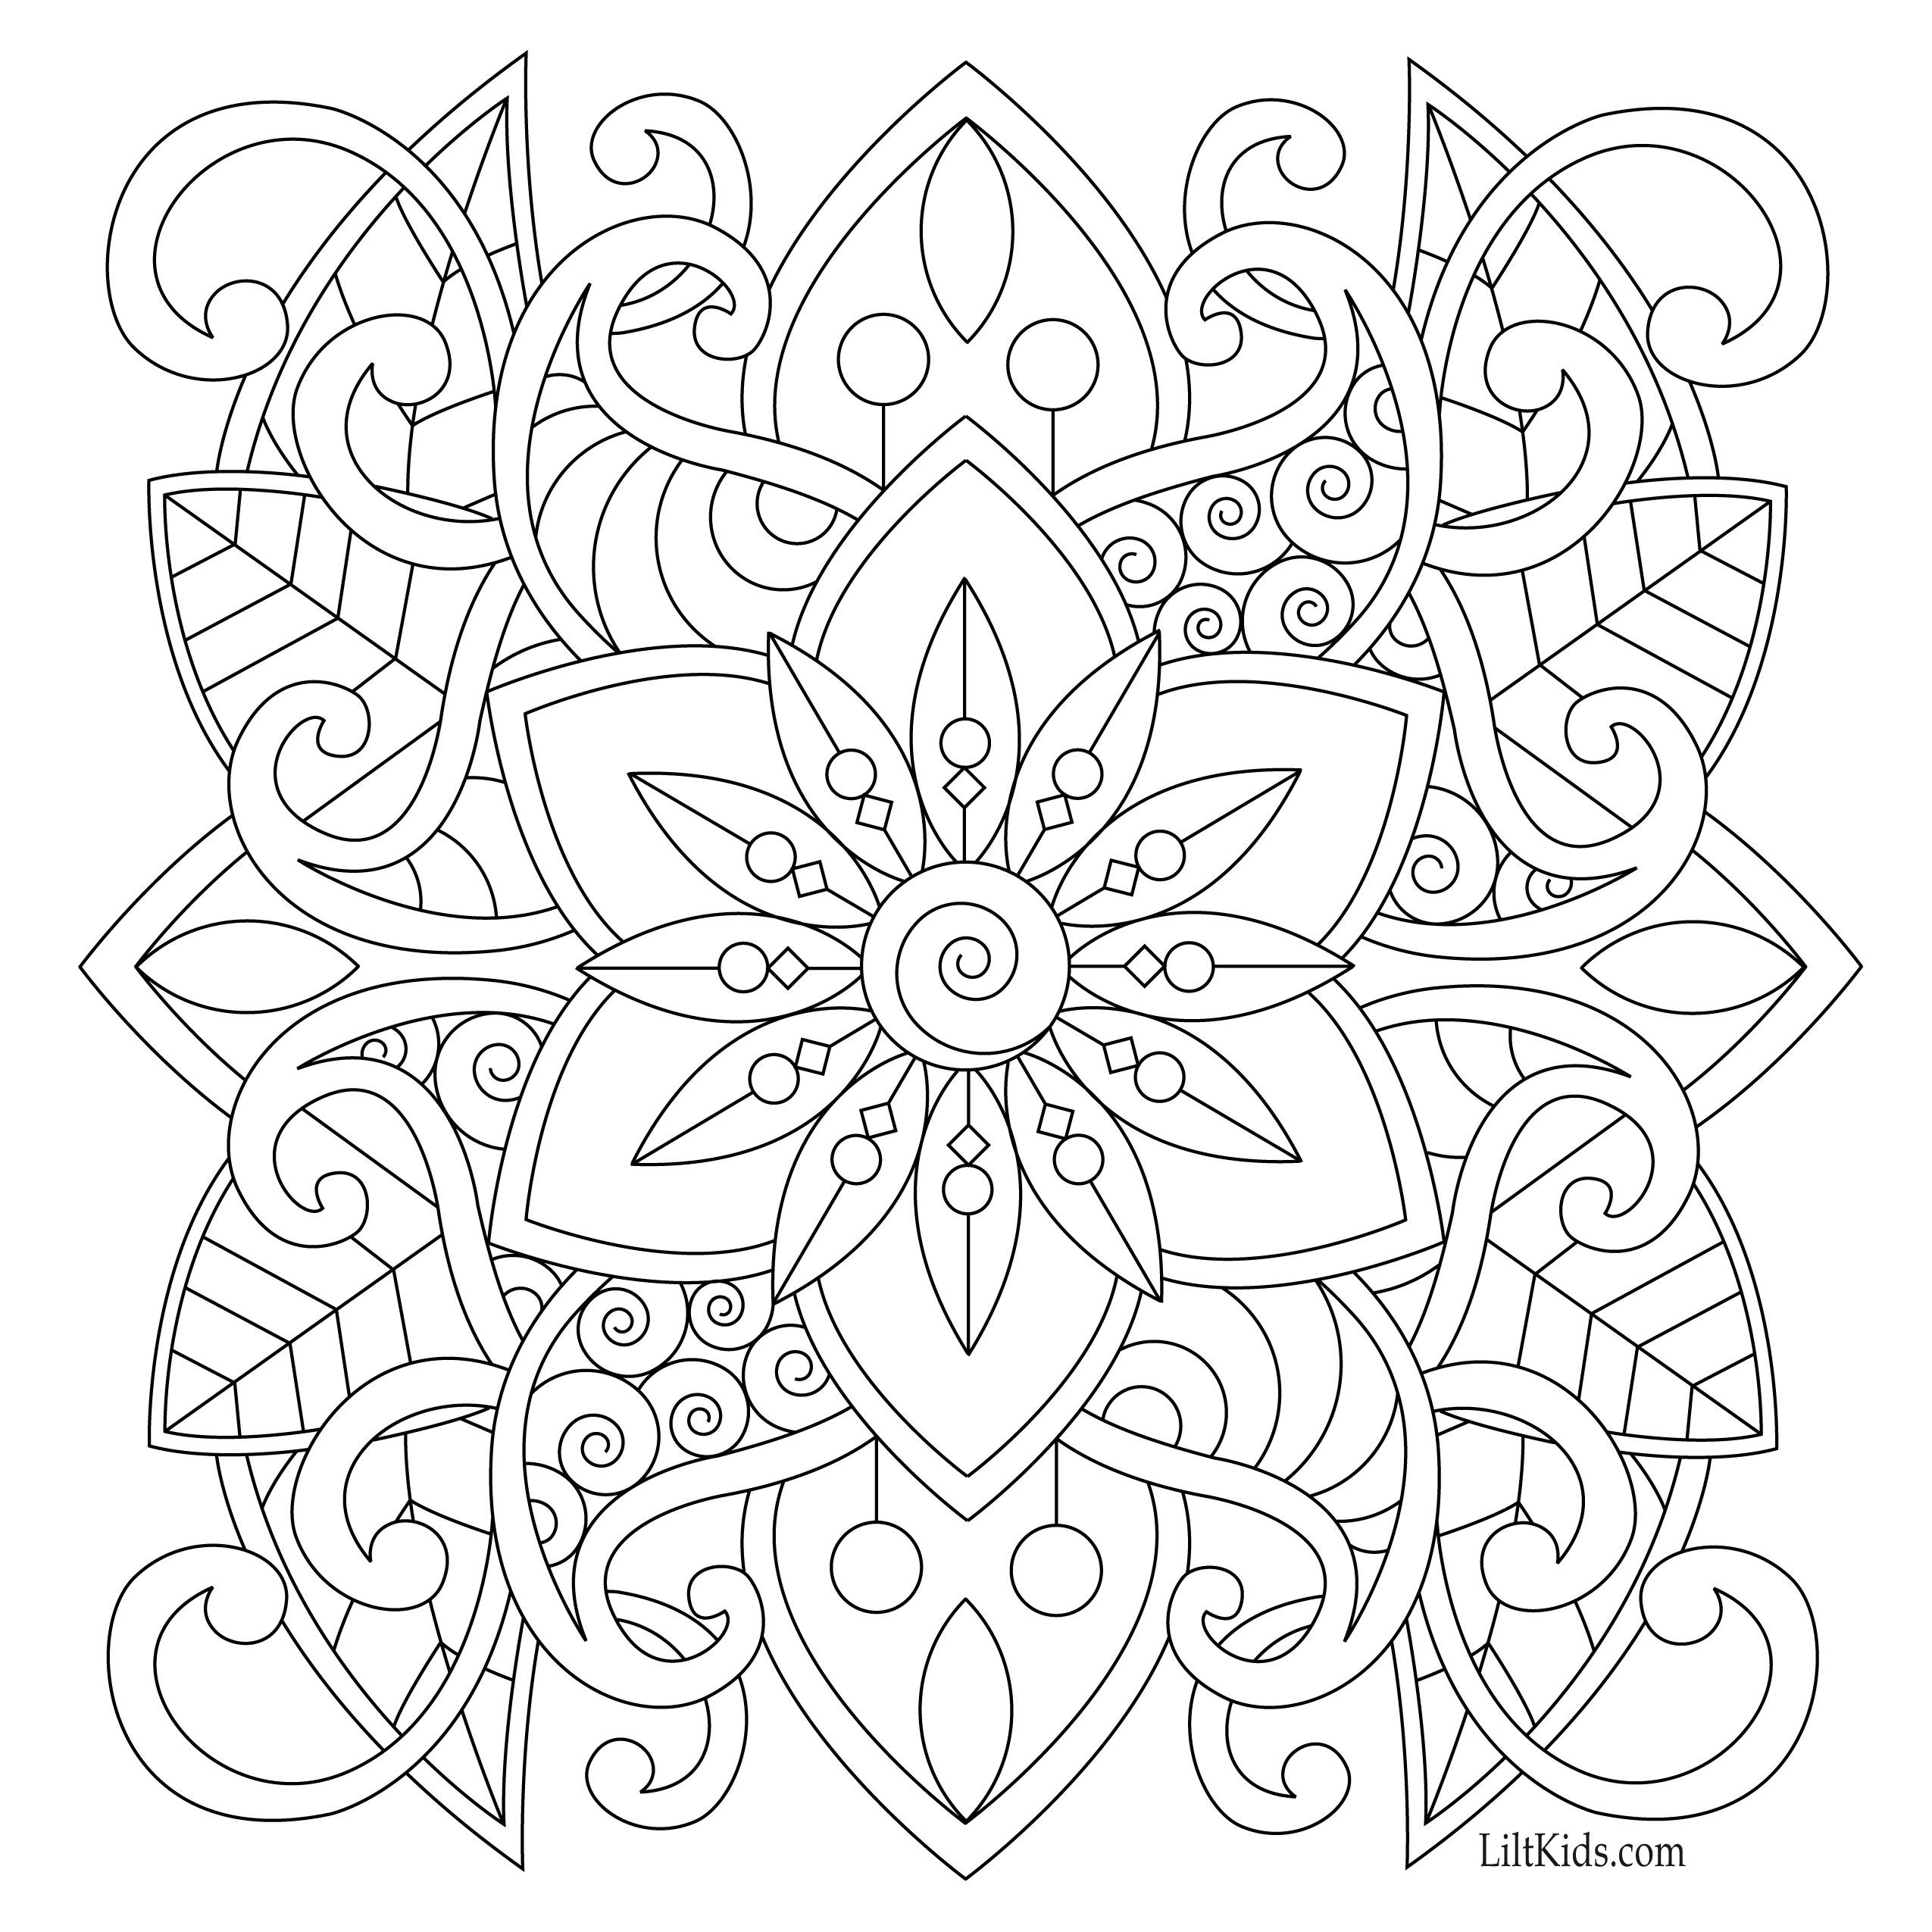 Free easy mandala for beginners adult coloring book image from liltkids com see more free adult coloring book images at liltkids com pin now color later